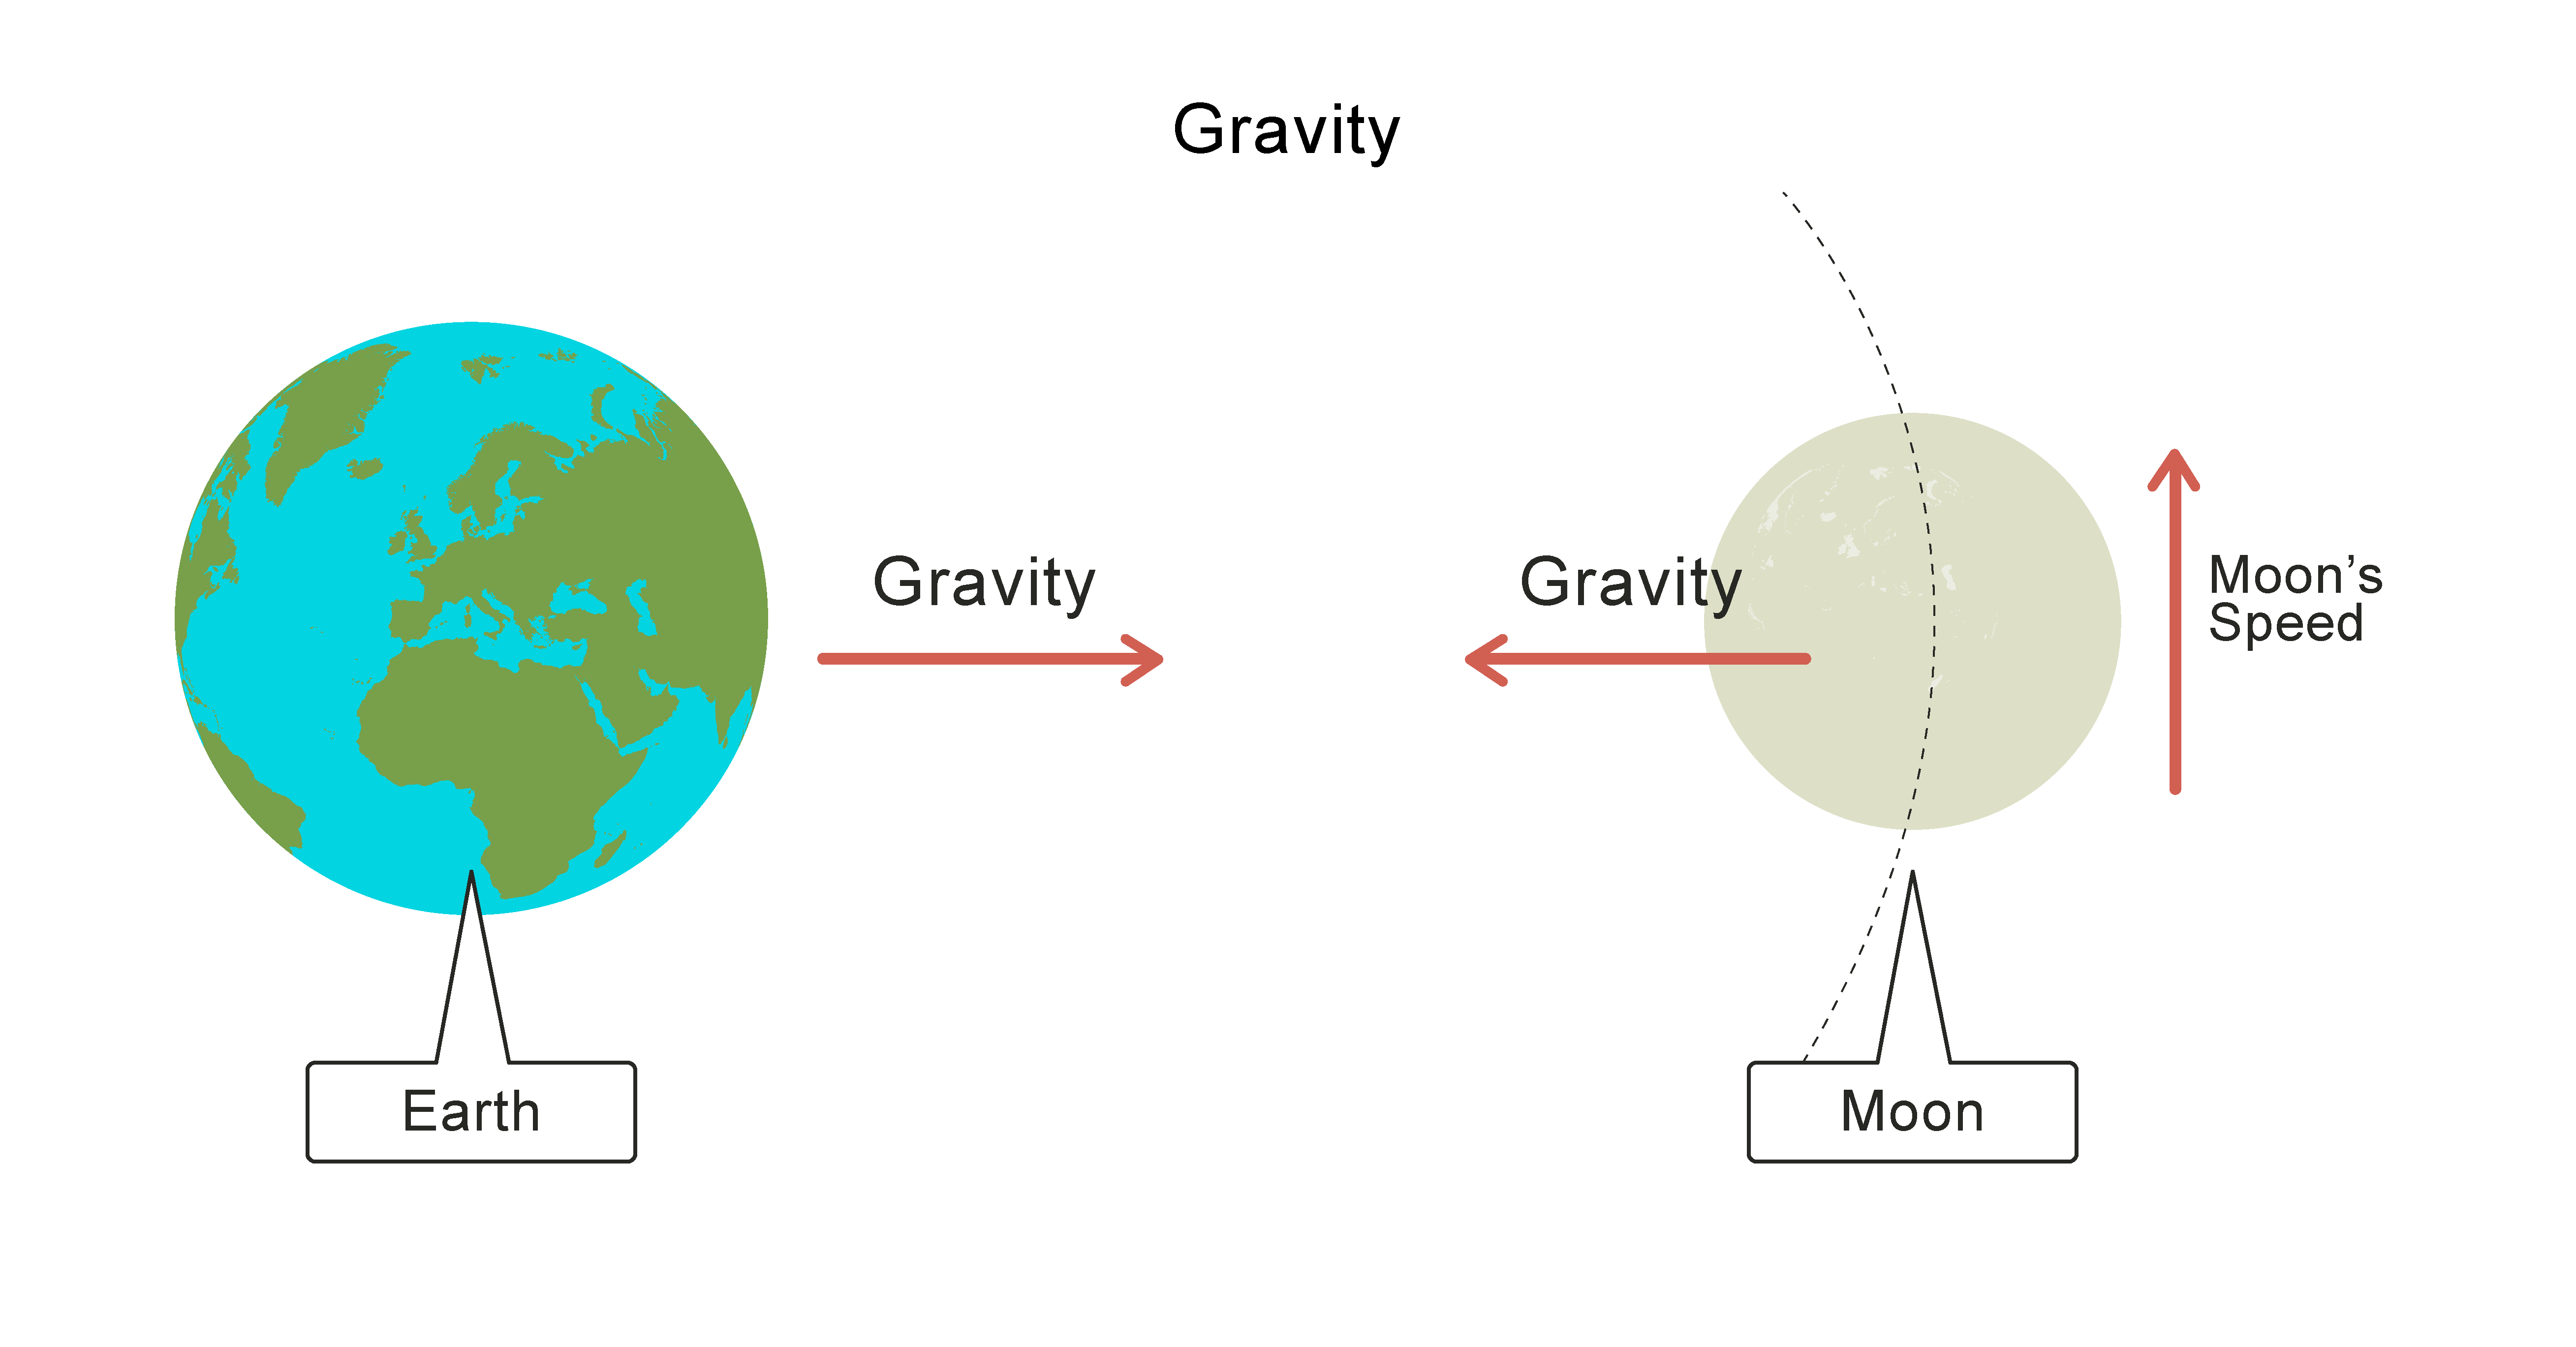 Earth and moon gravity